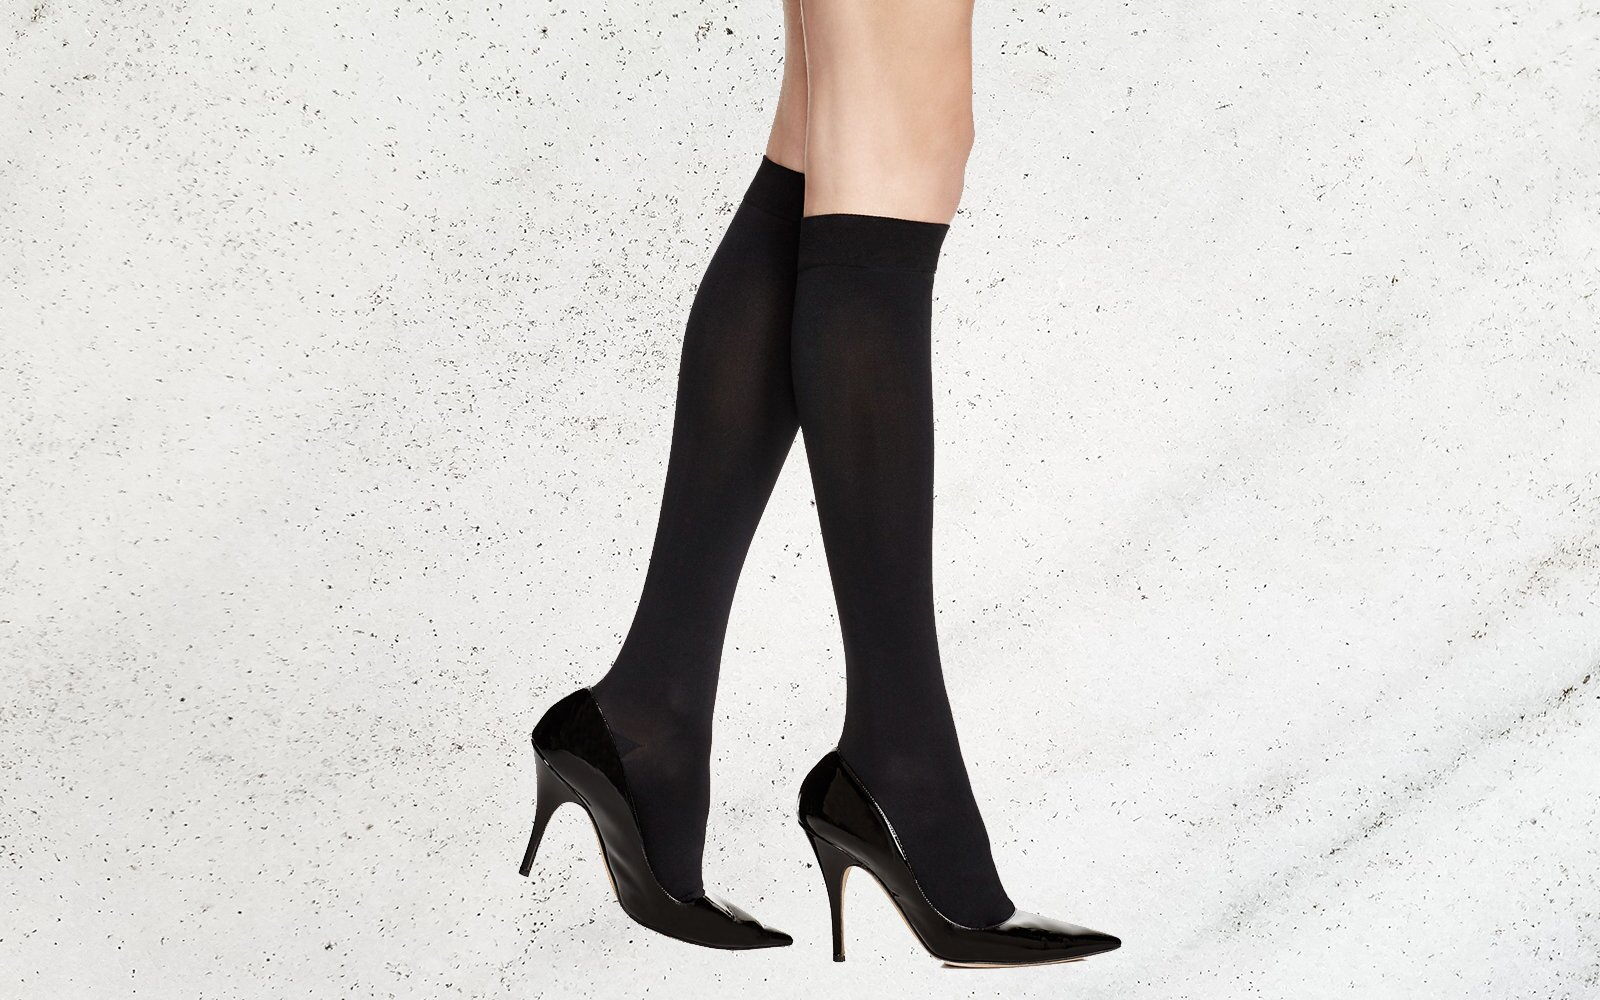 0c8c68ec2c0ce5 These Compression Socks Are Actually Stylish — and so Good for Your ...